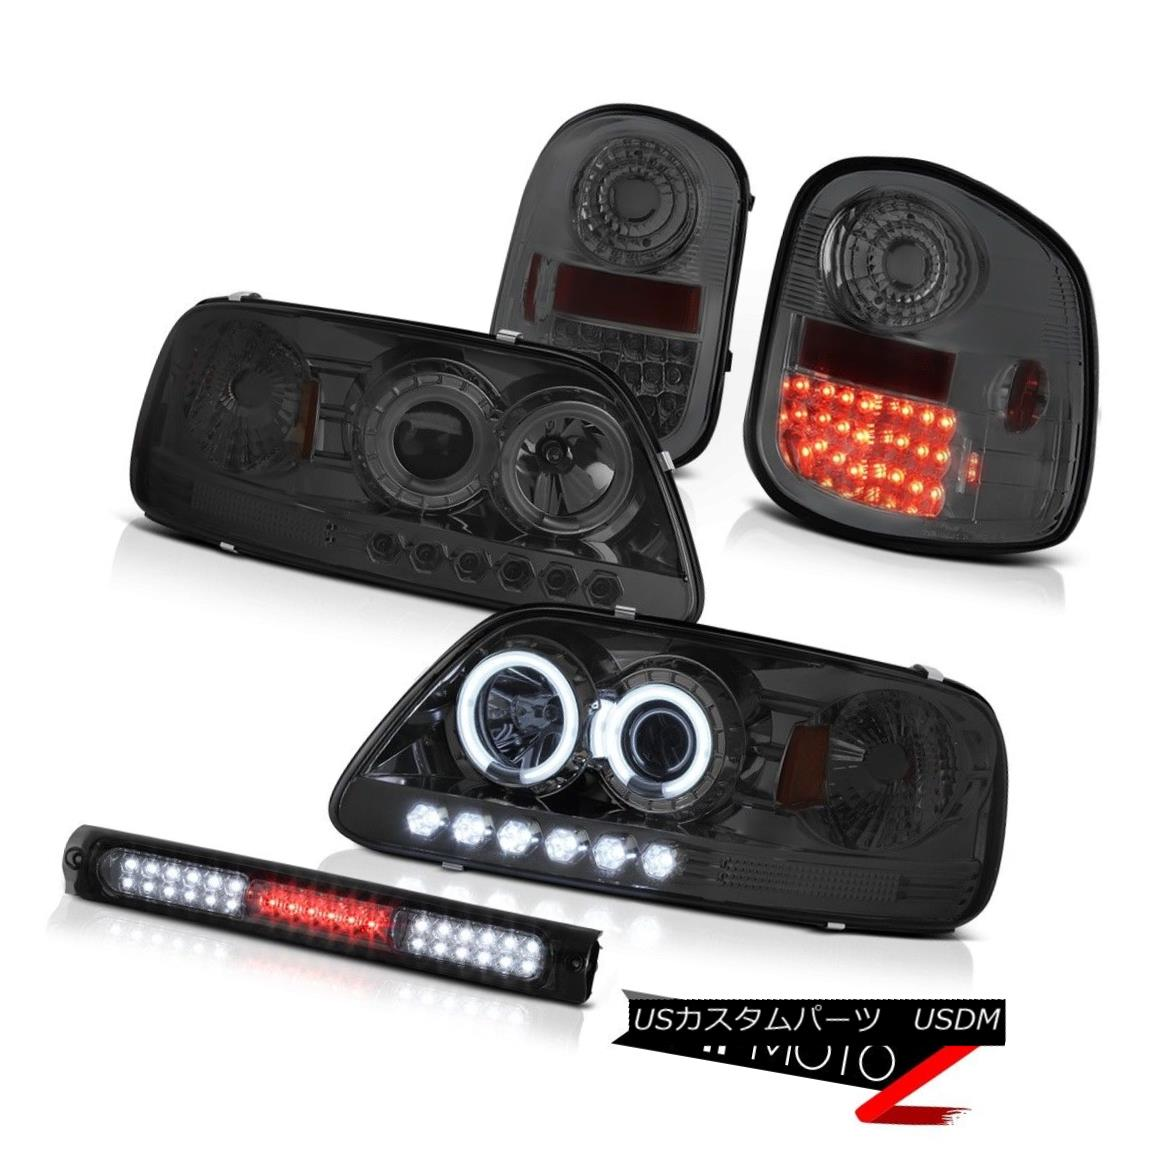 テールライト CCFL Smoke Halo Headlights Taillights Brake LED 1997-2003 F150 Flareside Lariat CCFLスモークハローヘッドライトテールライトブレーキLED 1997-2003 F150 Flareside Lariat